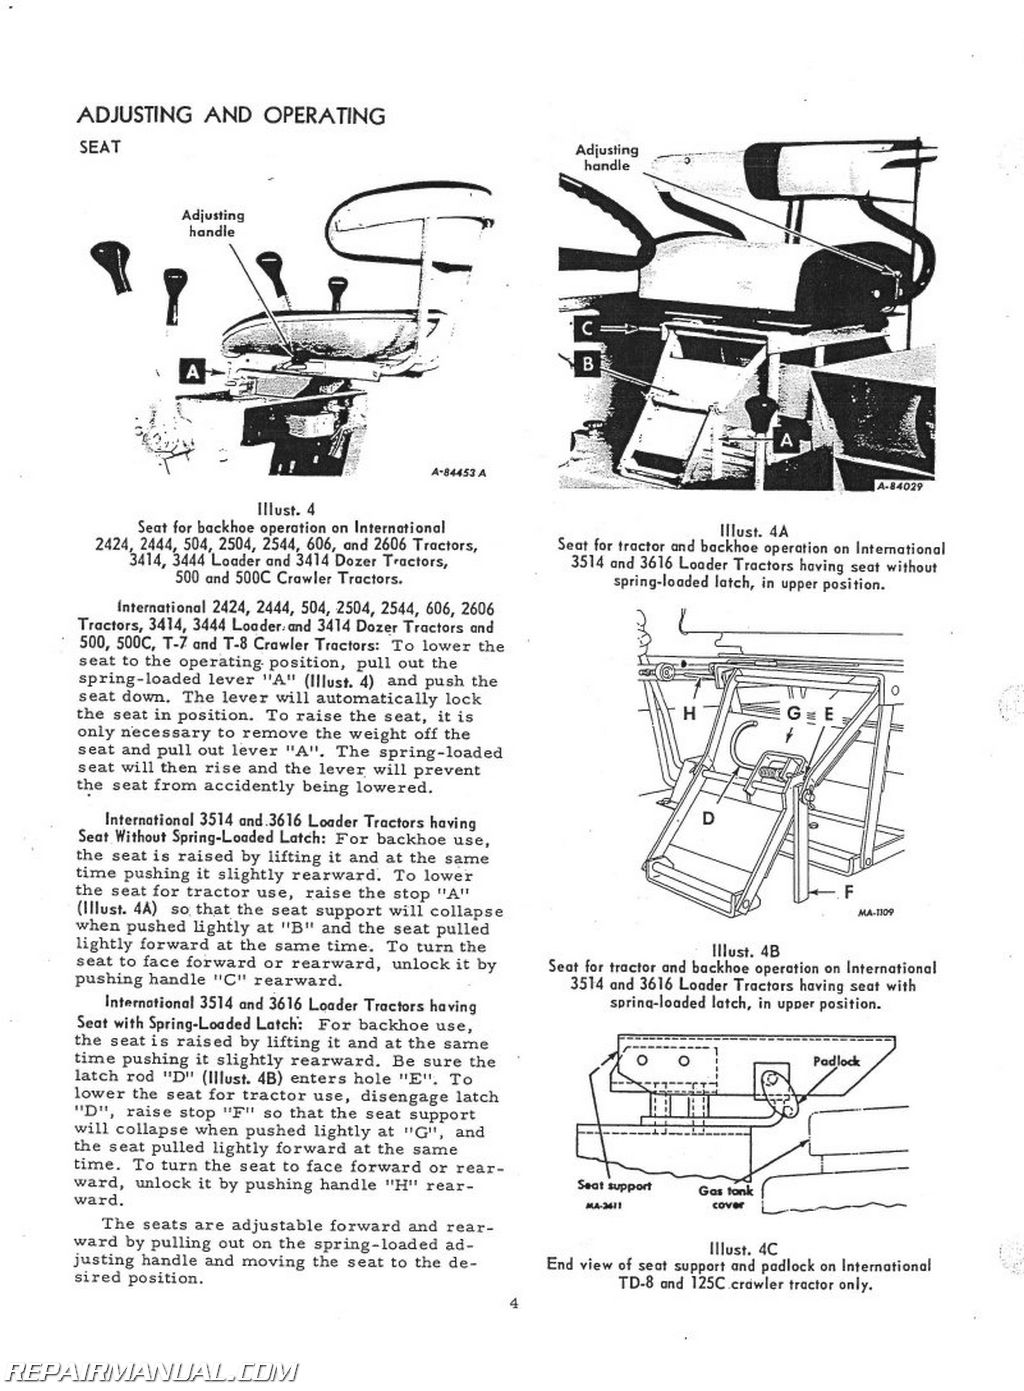 International Harvester Backhoe Attachment Operators Manual